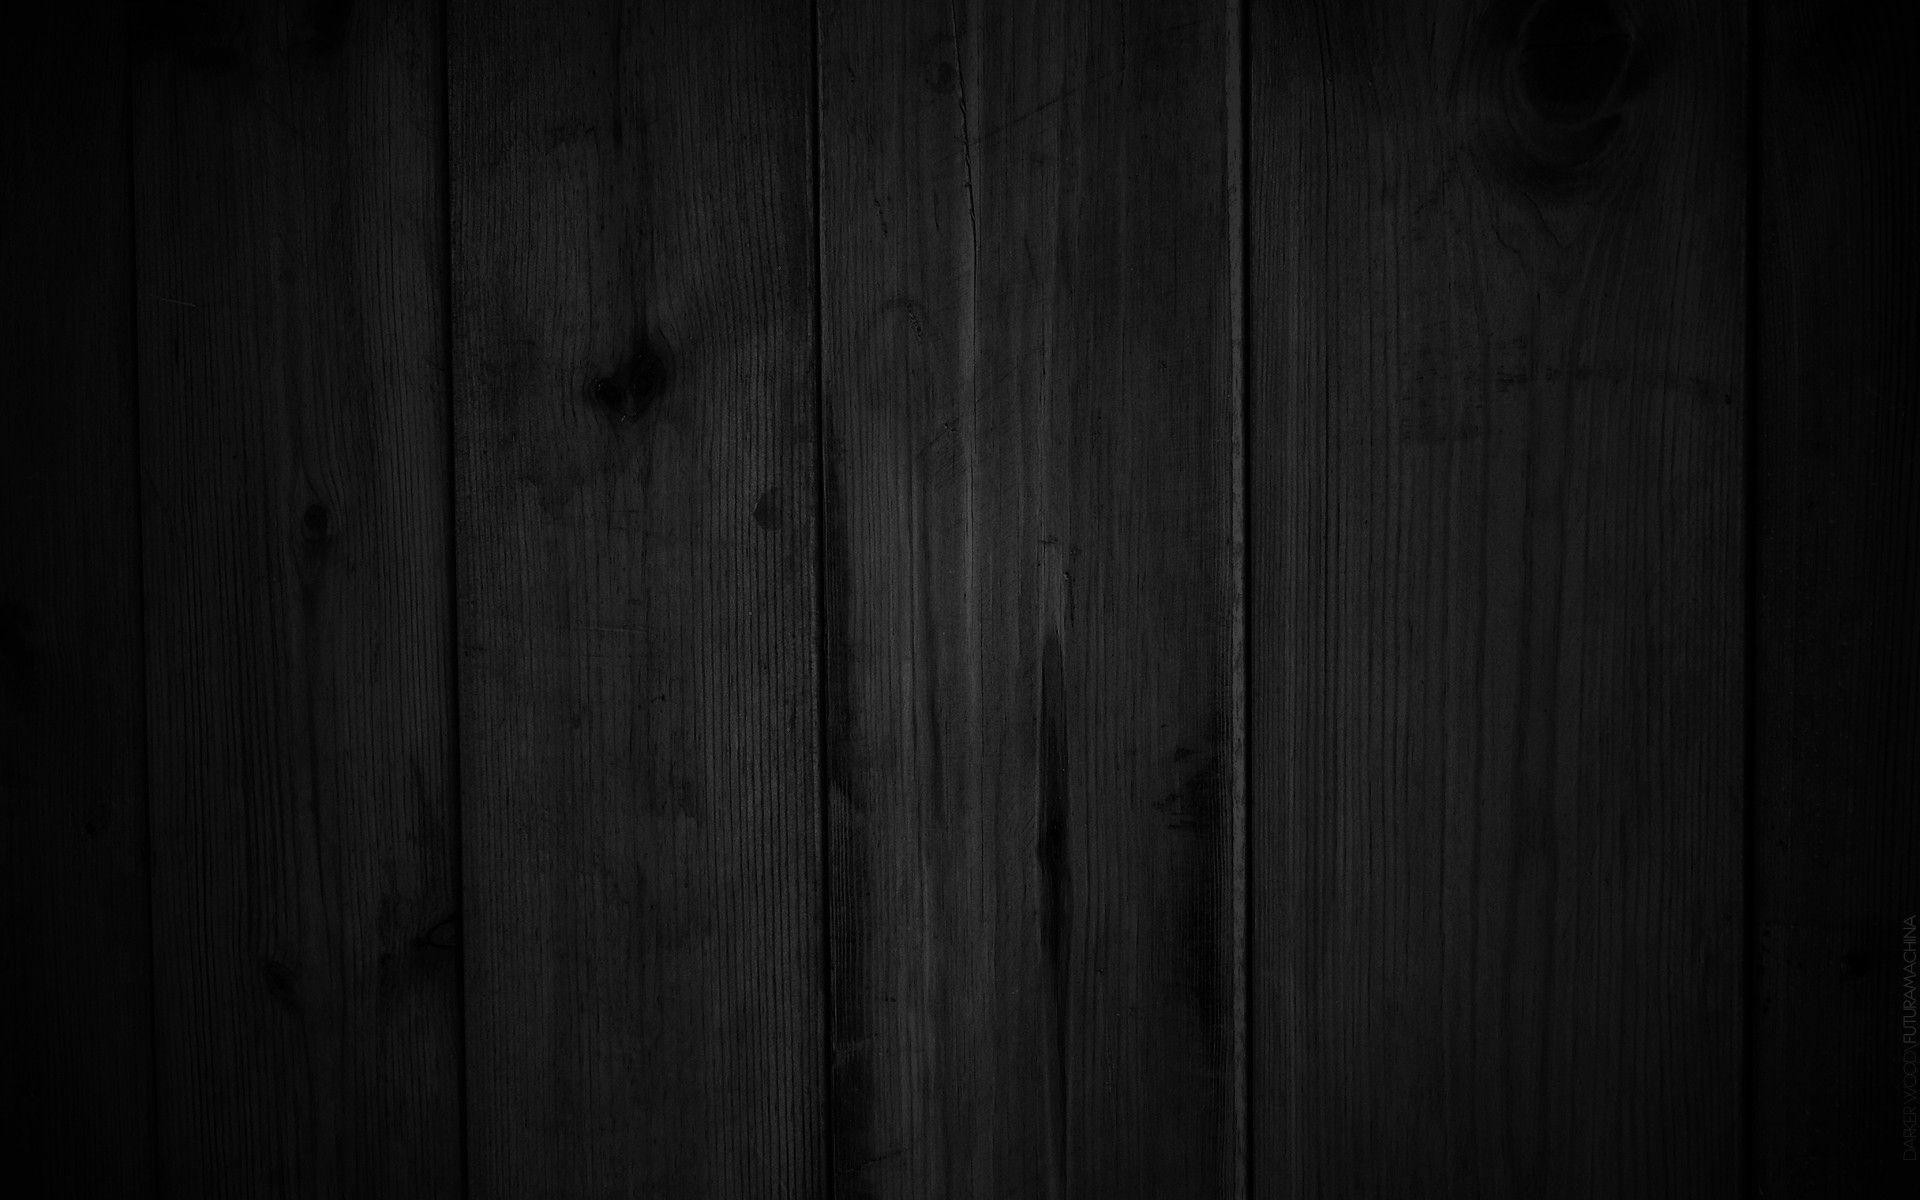 1920x1200 Dark Wood Wallpapers - Full HD wallpaper search